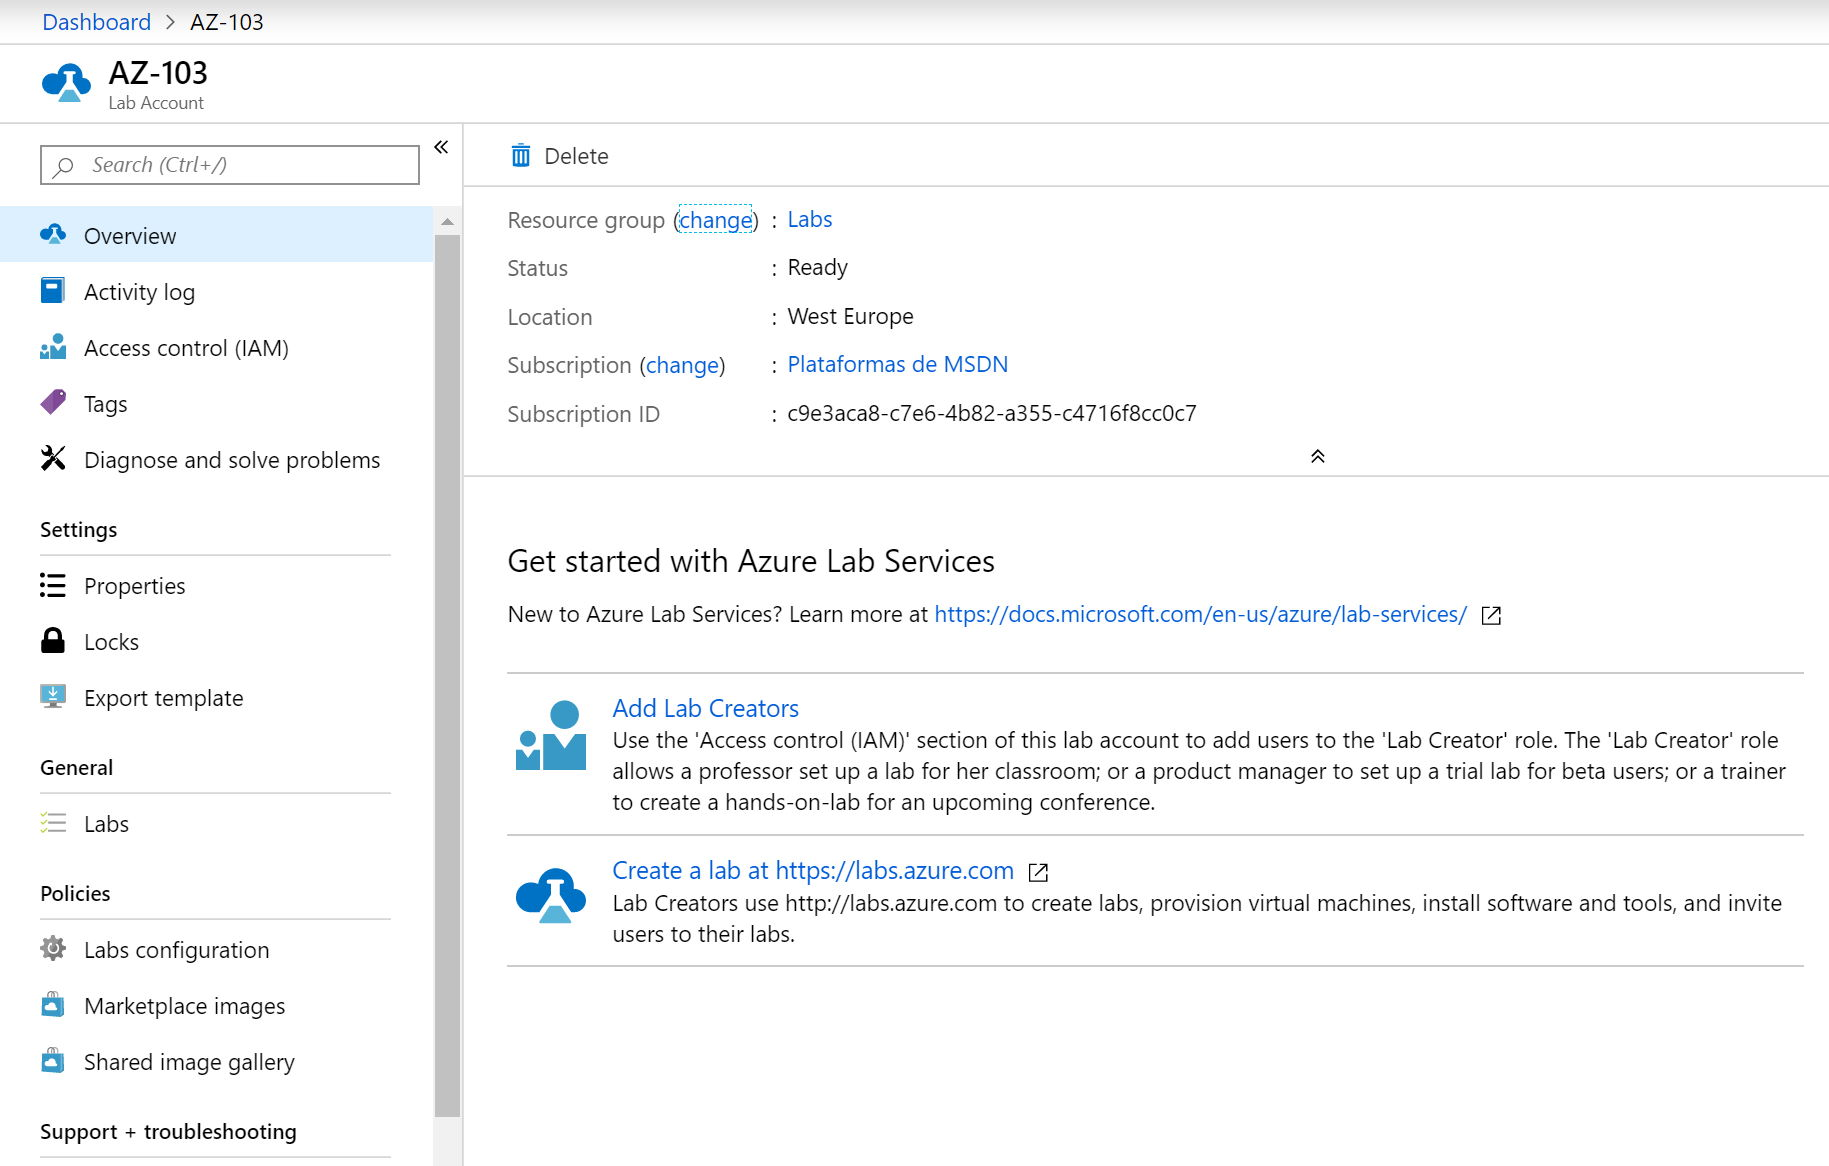 Azure Labs Overview